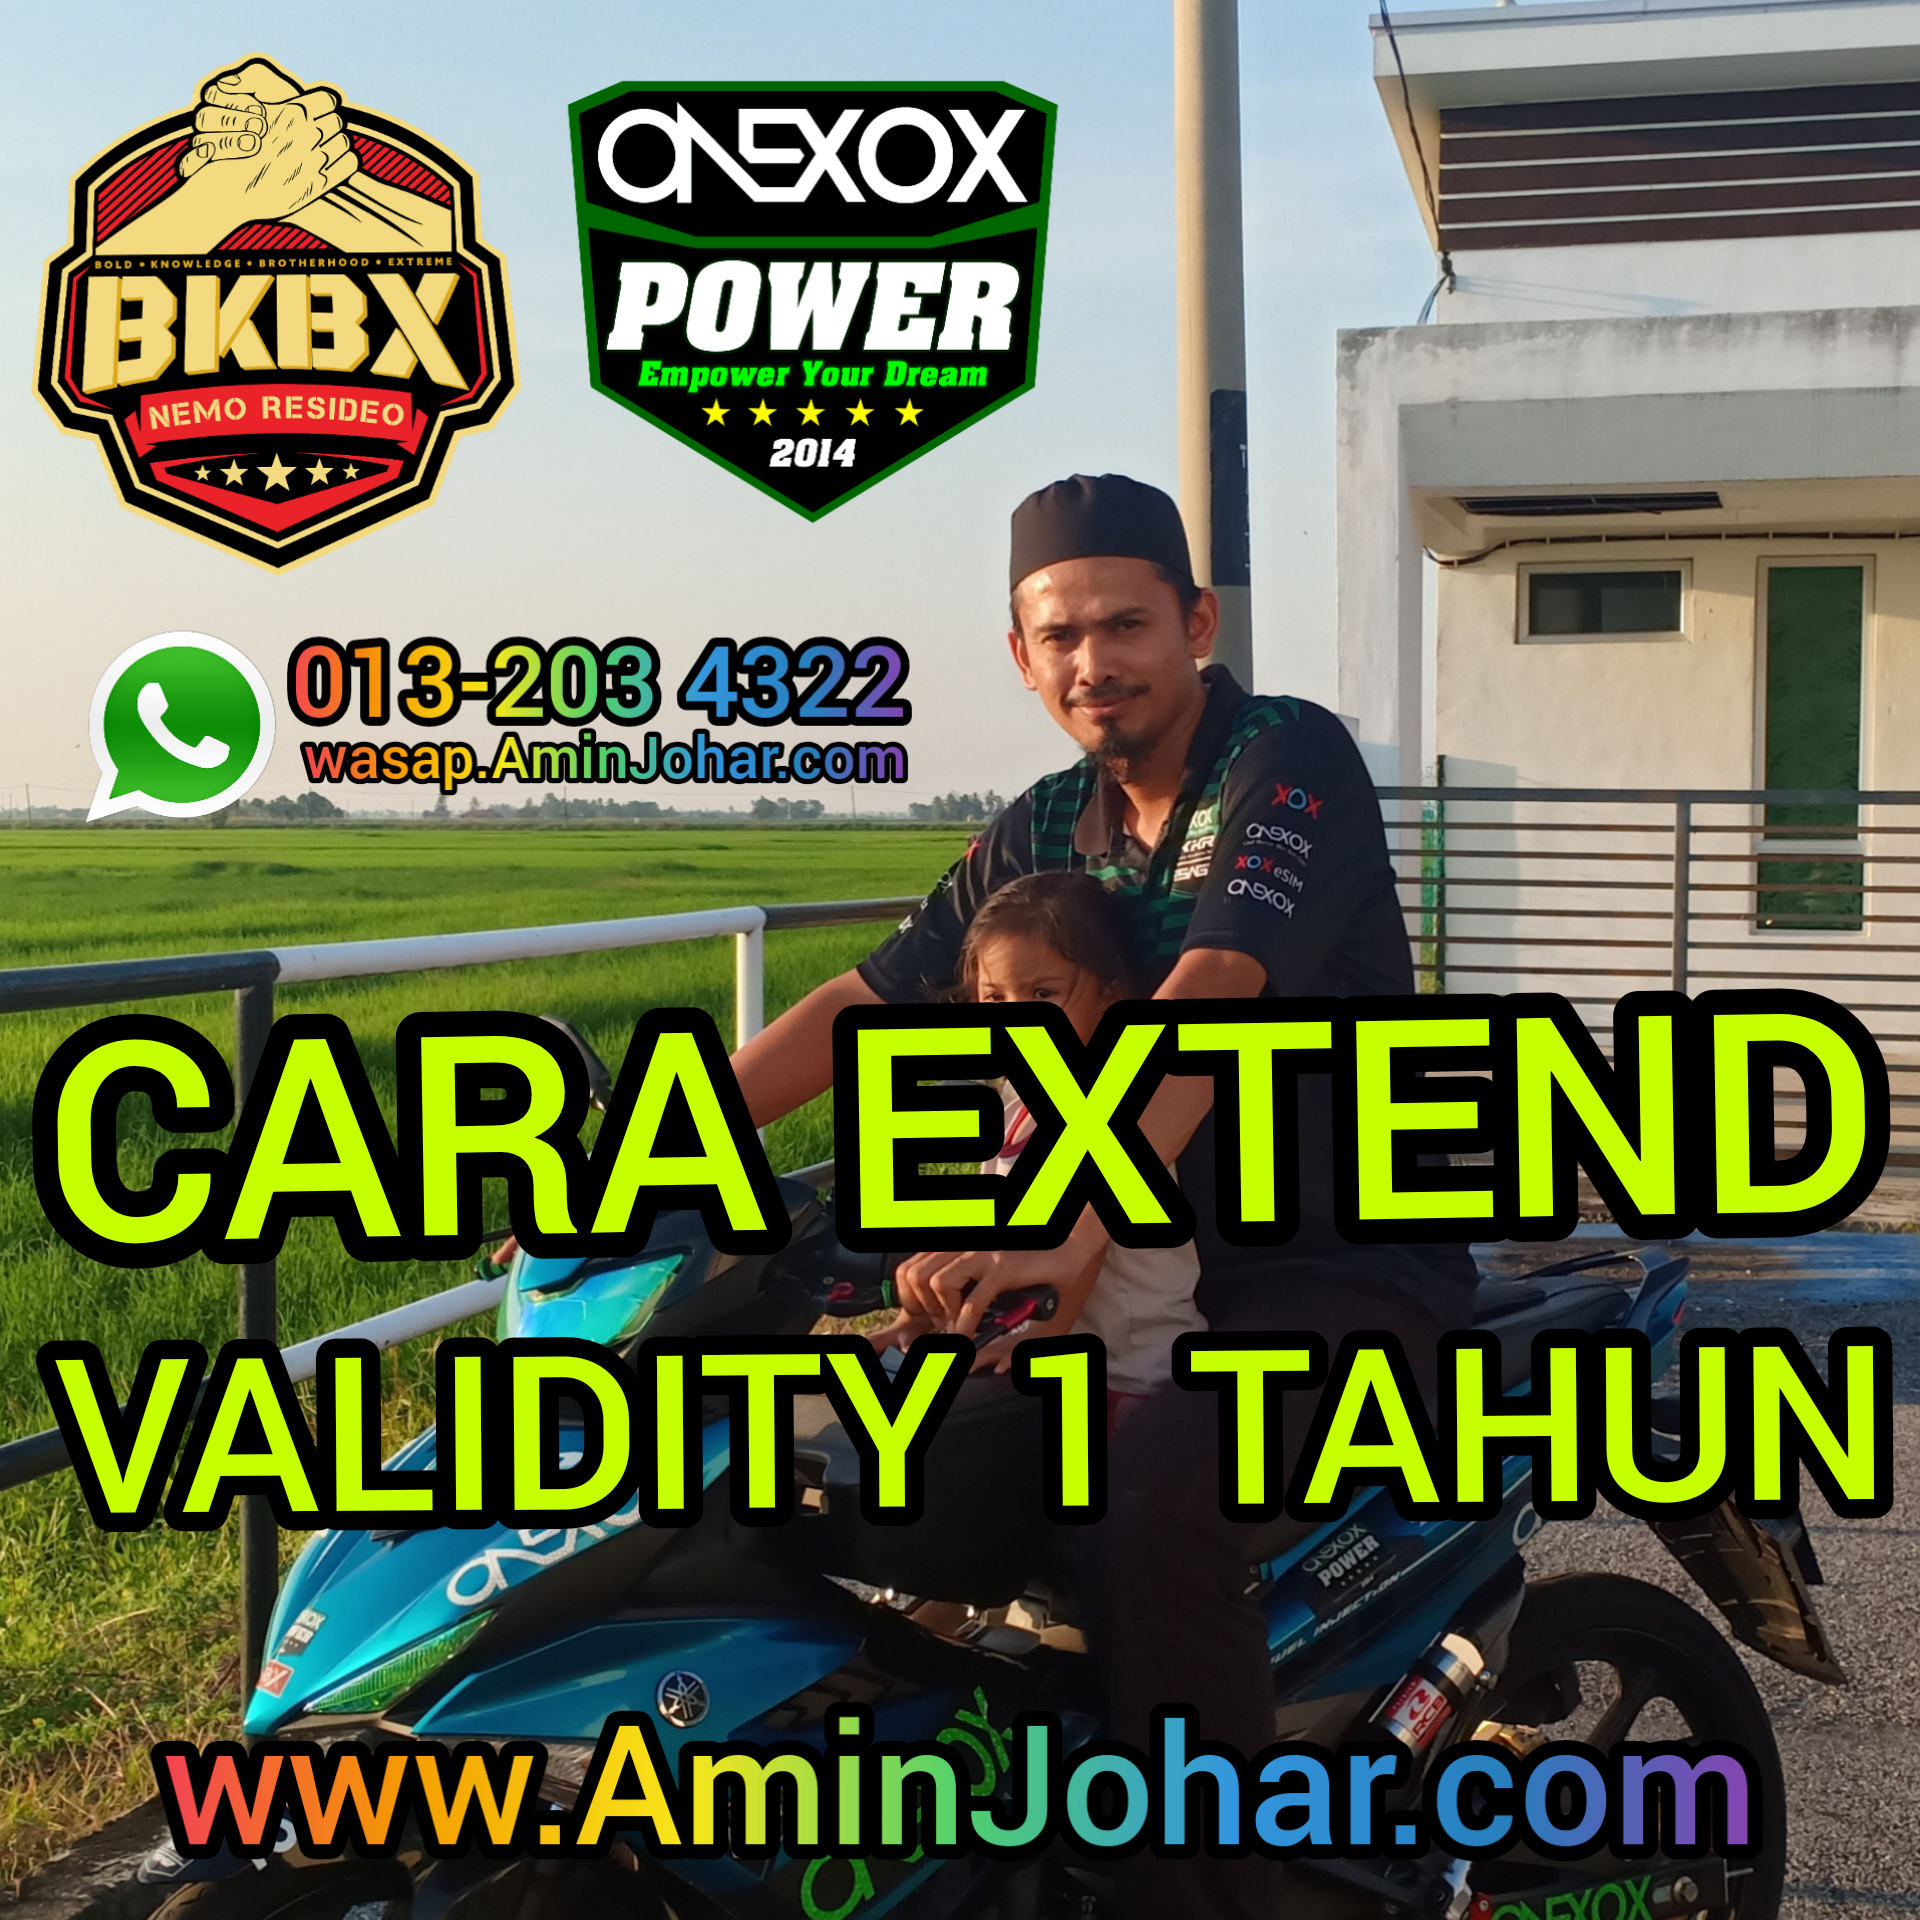 CARA-CARS EXTEND VALIDITY ONEXOX